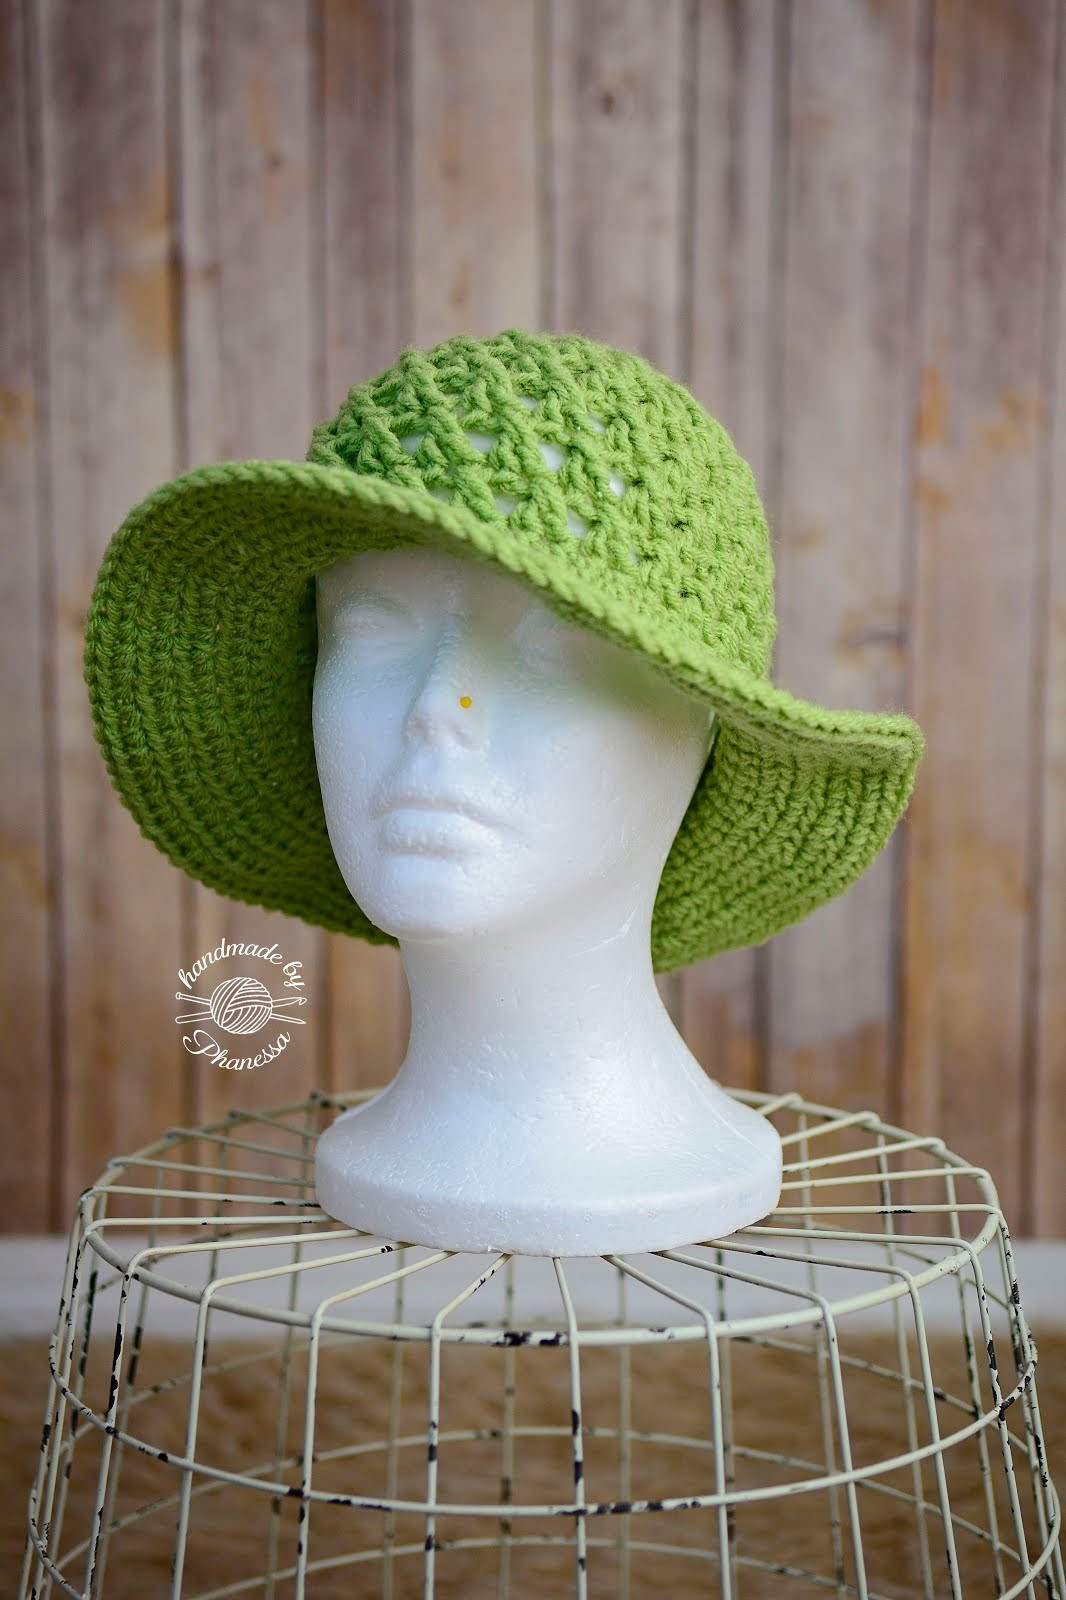 New Handmade by Phanessa Crochet Sun Hat Pattern Crochet Sun Hat Pattern Of Superb 48 Ideas Crochet Sun Hat Pattern